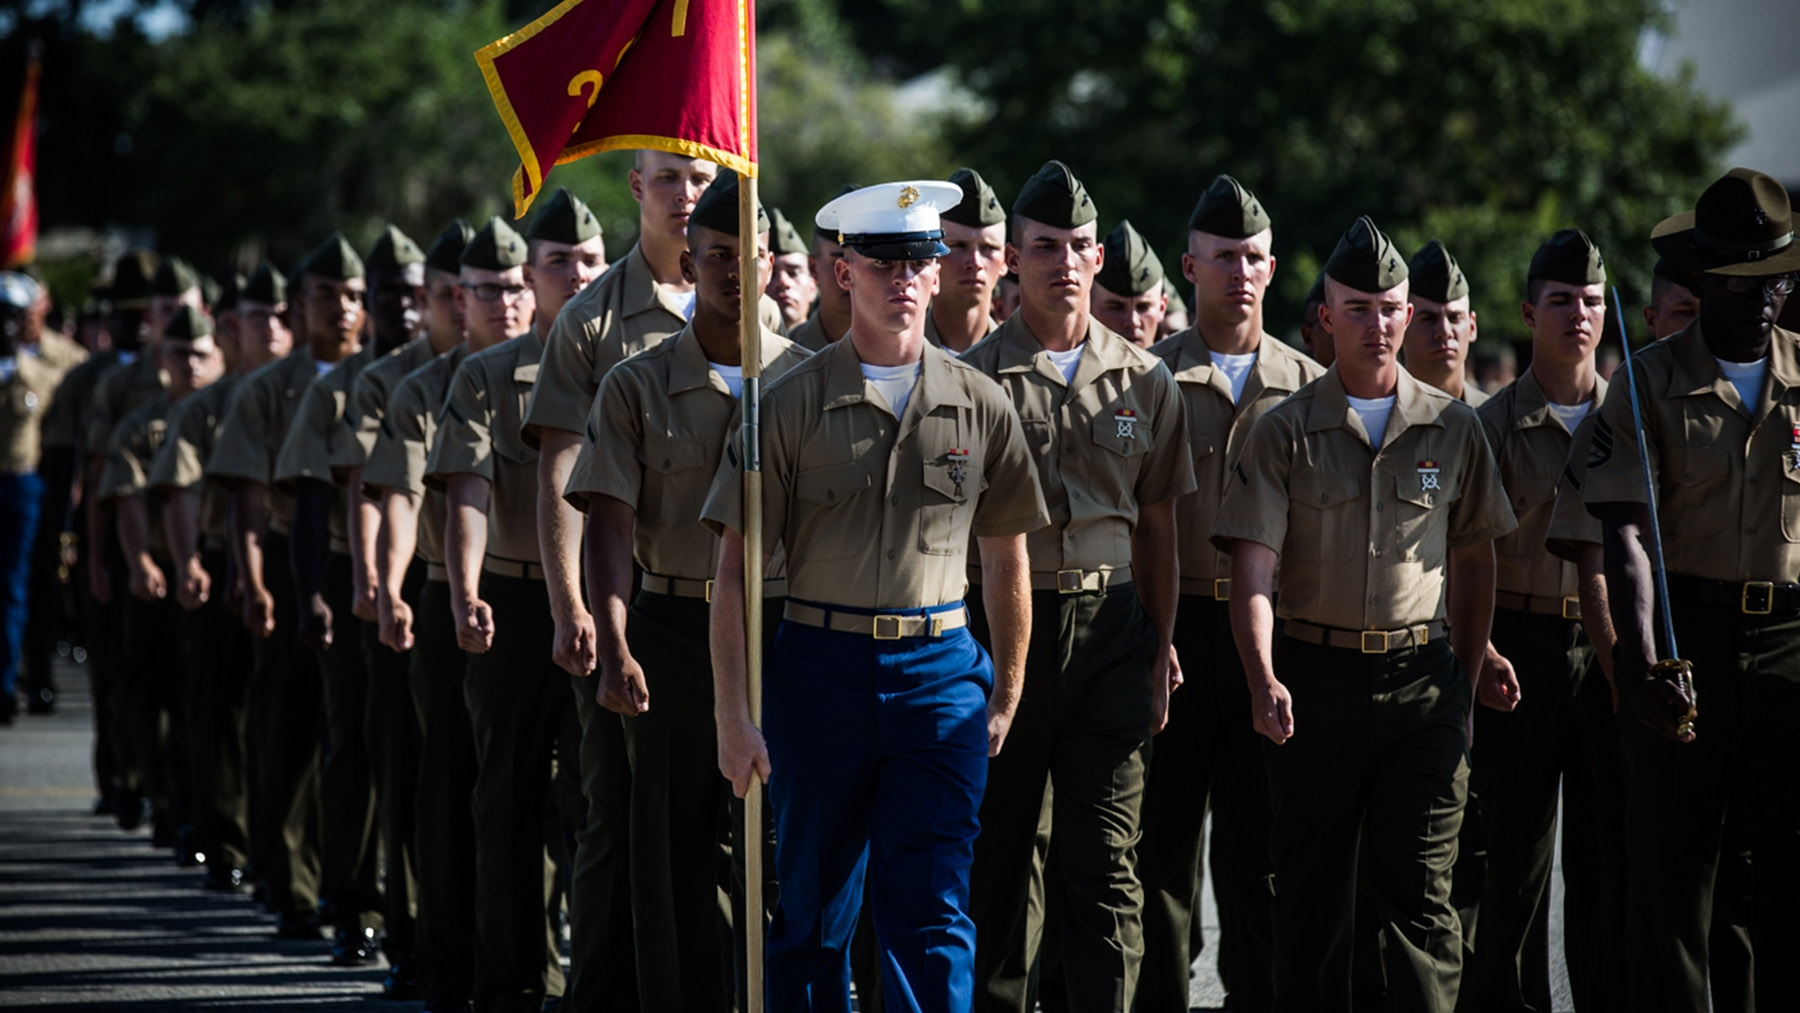 Marines graduation parade